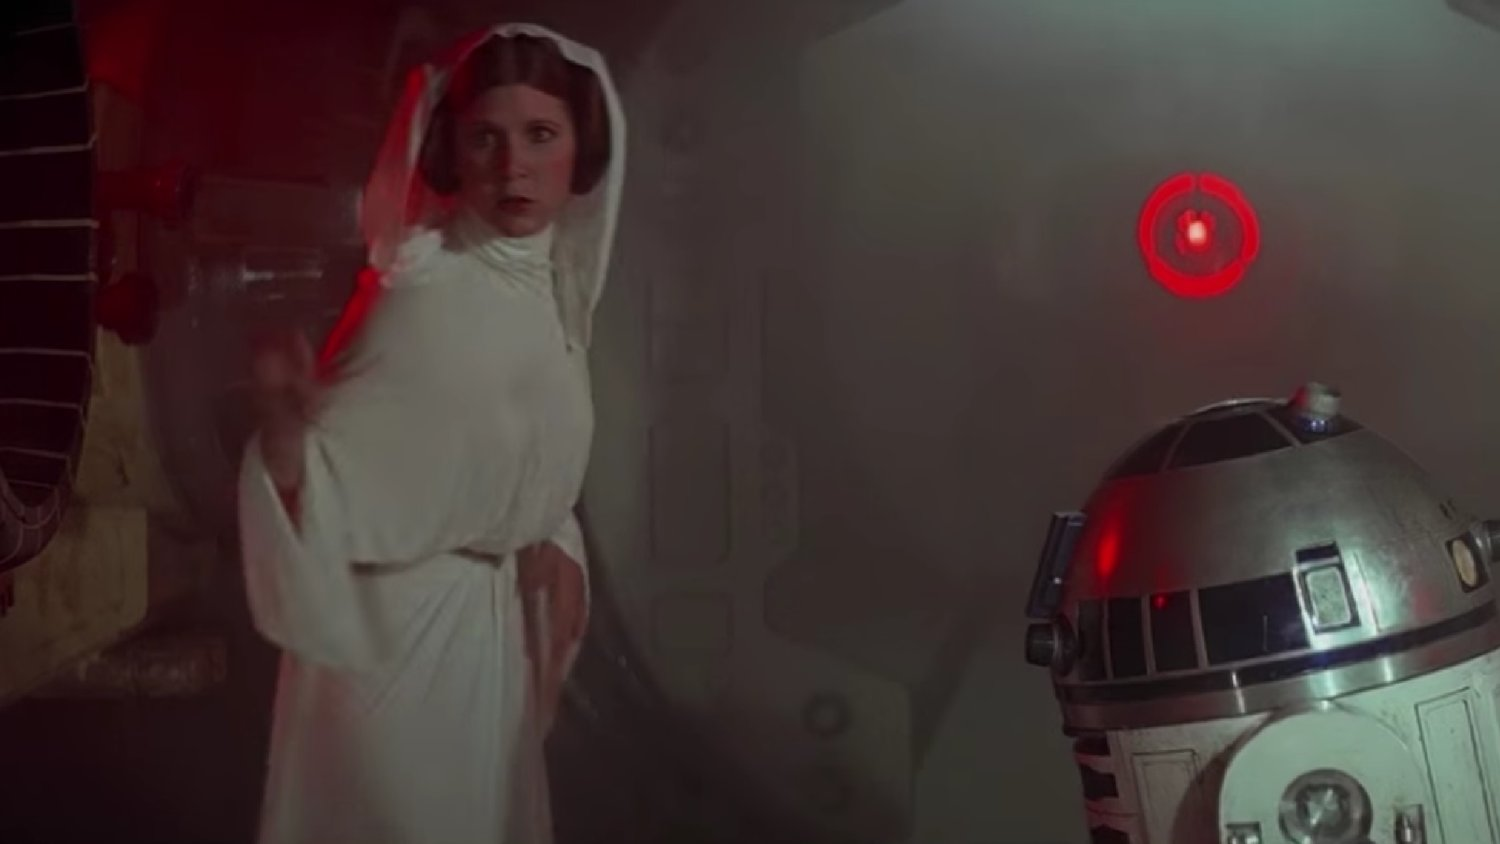 Watch: Voice Actor Dubs in Actual Lines for R2-D2